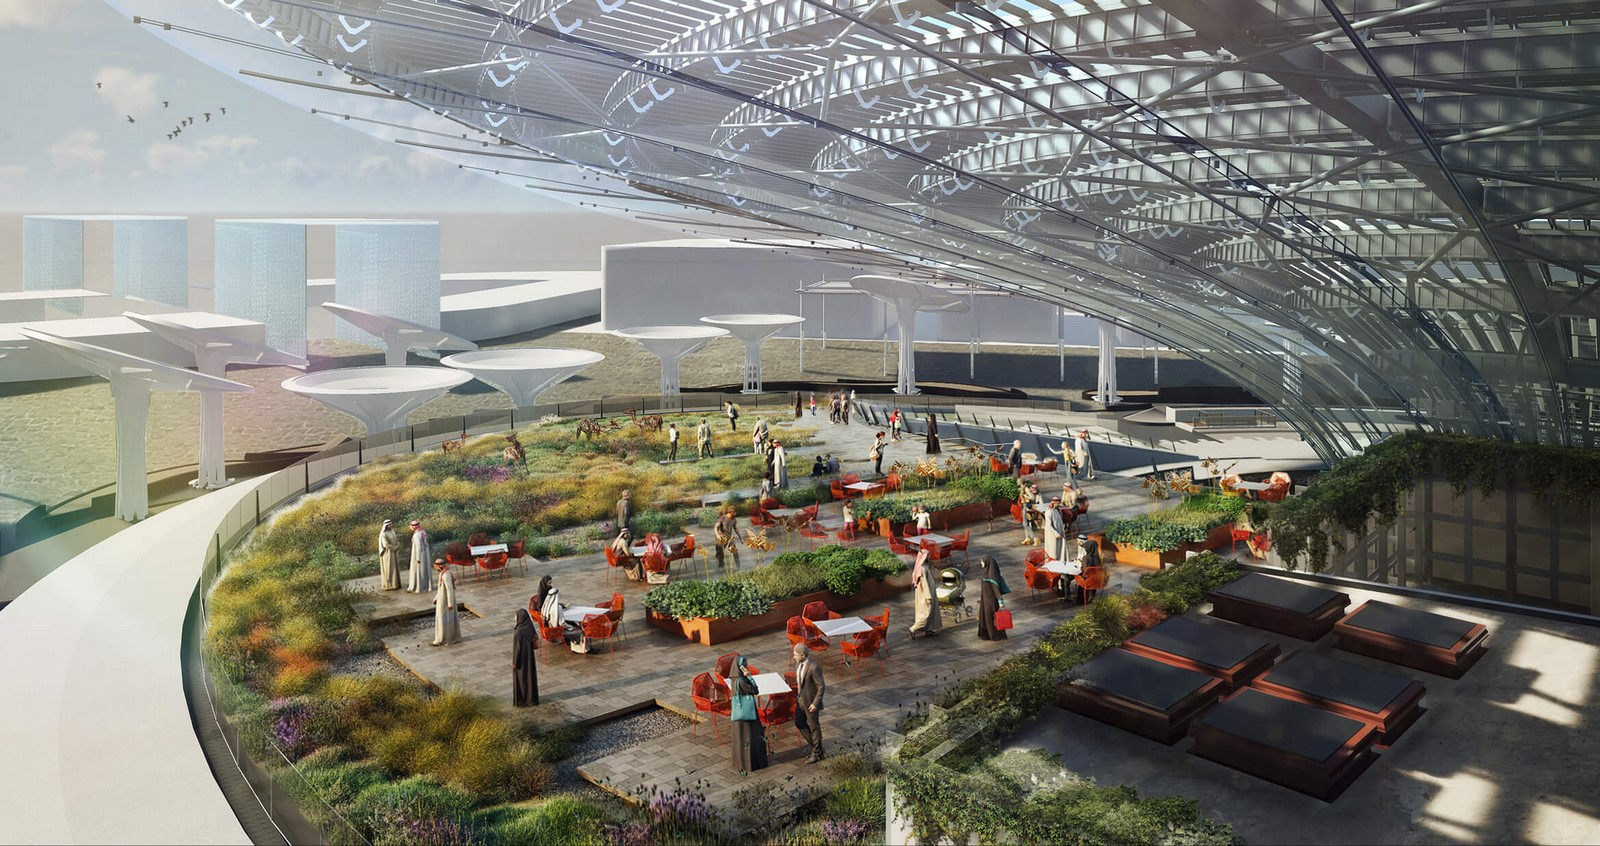 Dubai Expo 2020 Sustainability Pavilion - Sheet1